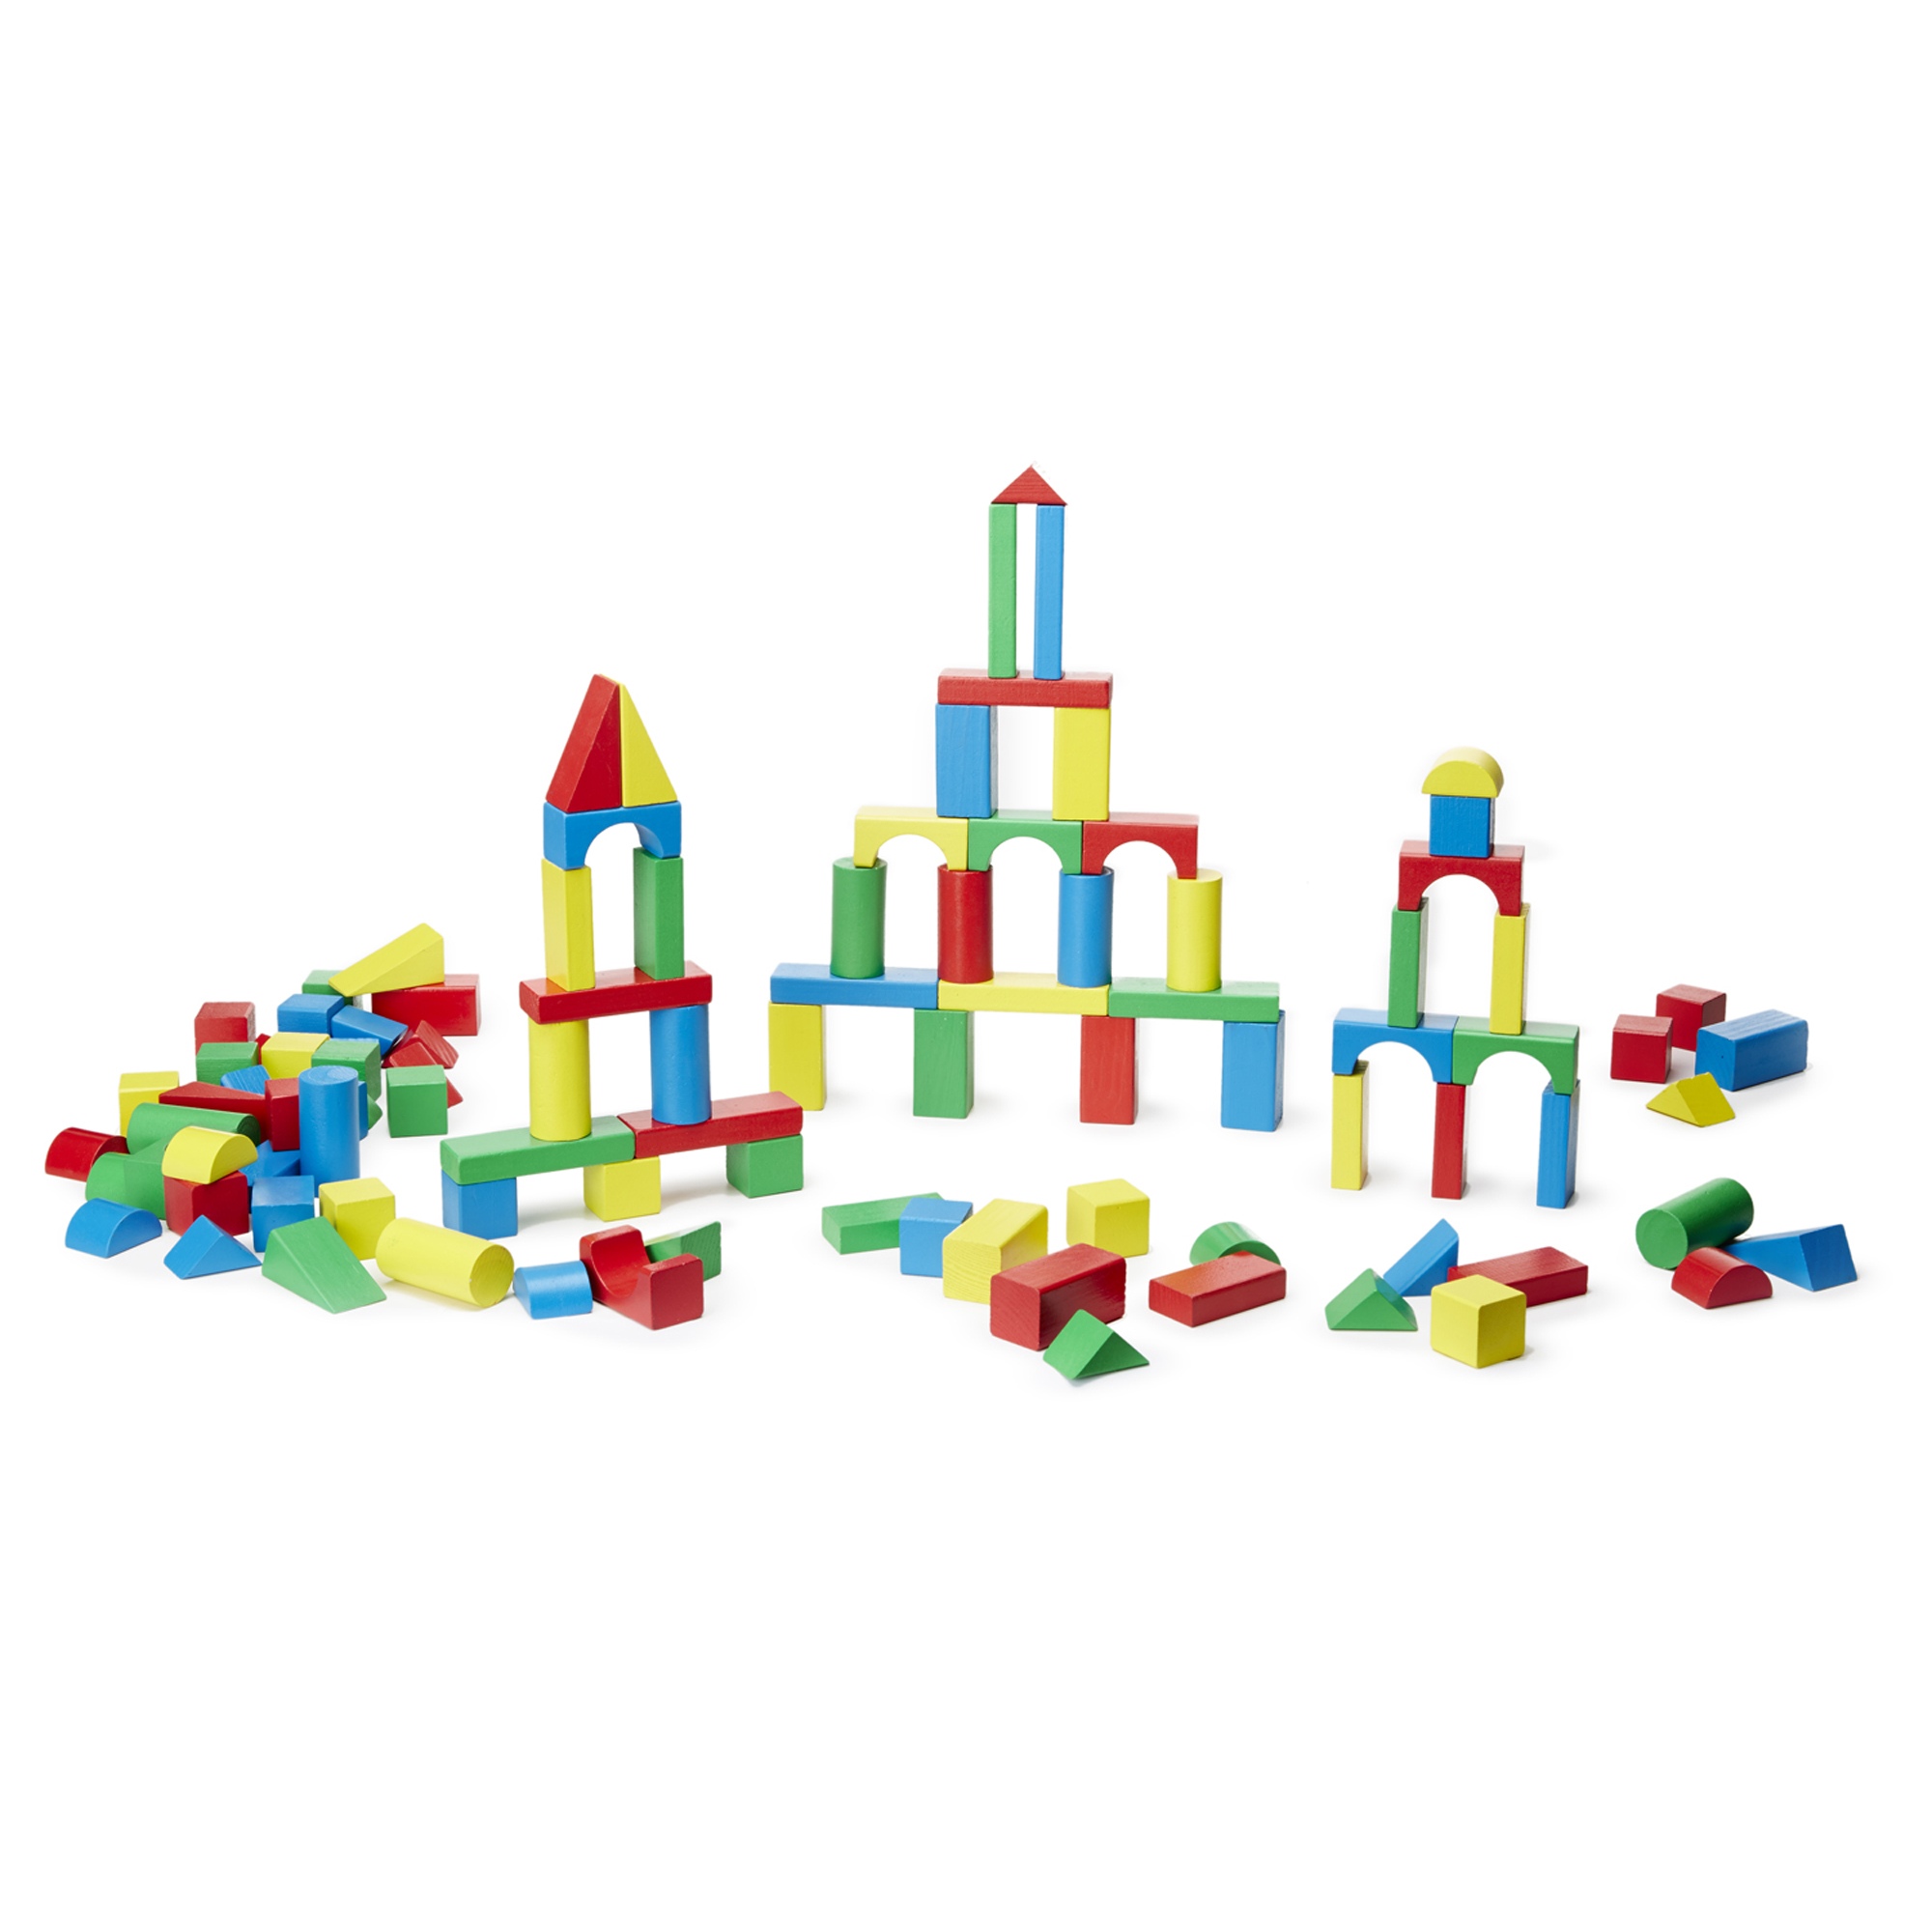 200 blocks in four colors and nine shapes for your little builder to stack, build, and knock down! Bright, non-toxic colors add to construction and sorting fun.